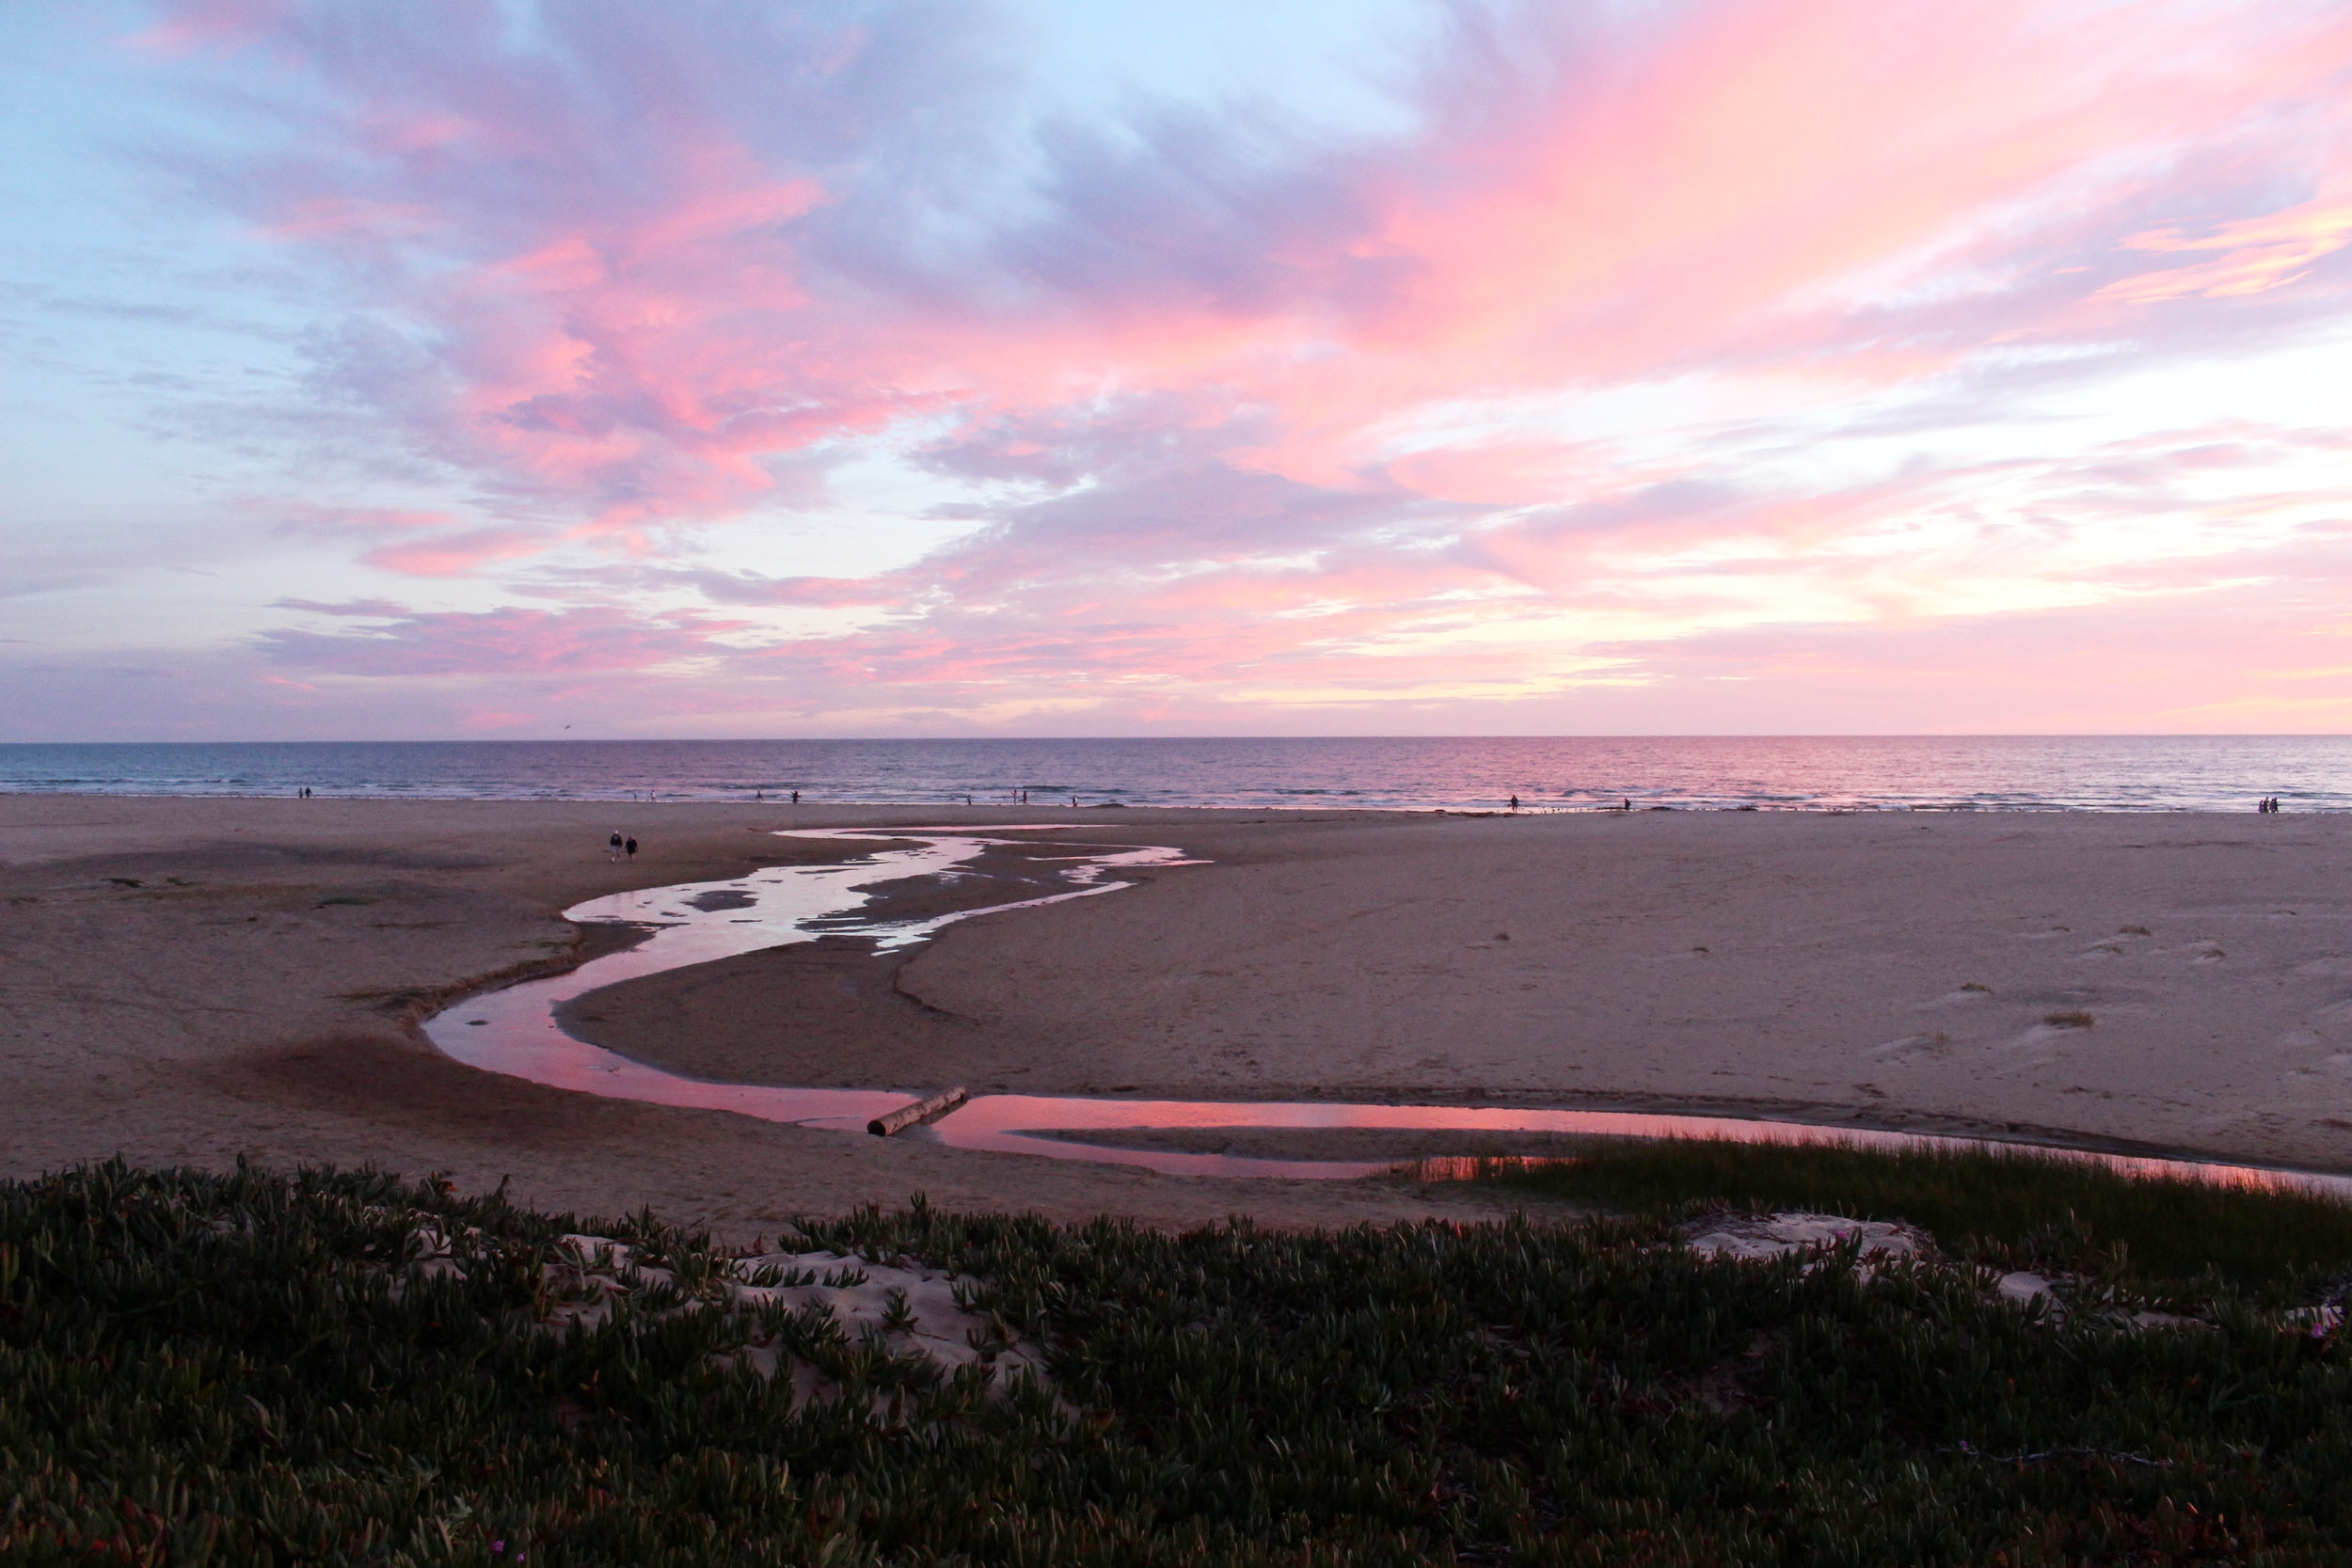 My favorite sunset of all time at Pismo Beach, California, in August 2015